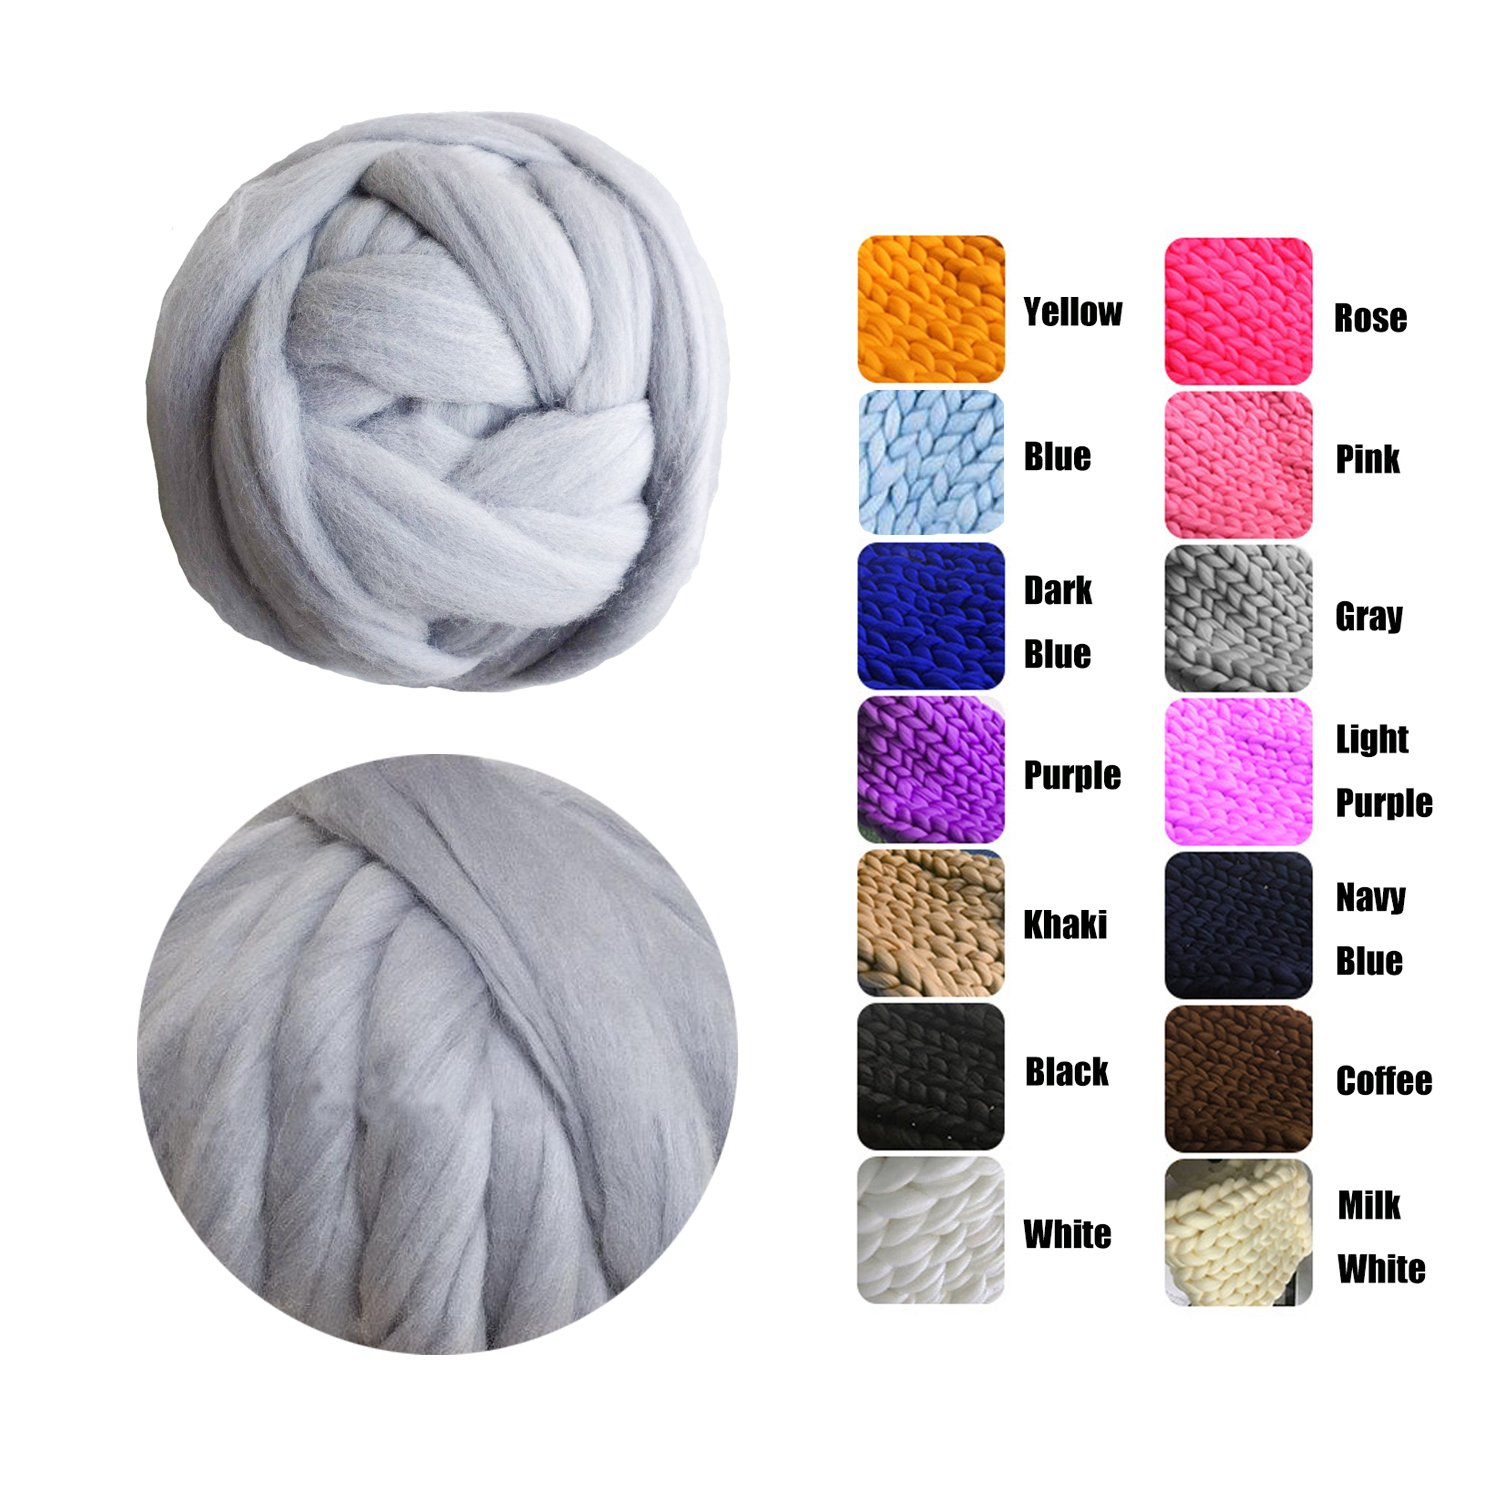 EASTSURE Chunky Roving Merino Wool Yarn Knit Yarn DIY Blanket Giant Roving for Arm Knitting,Grey,6.6LB/3KG by EASTSURE (Image #1)